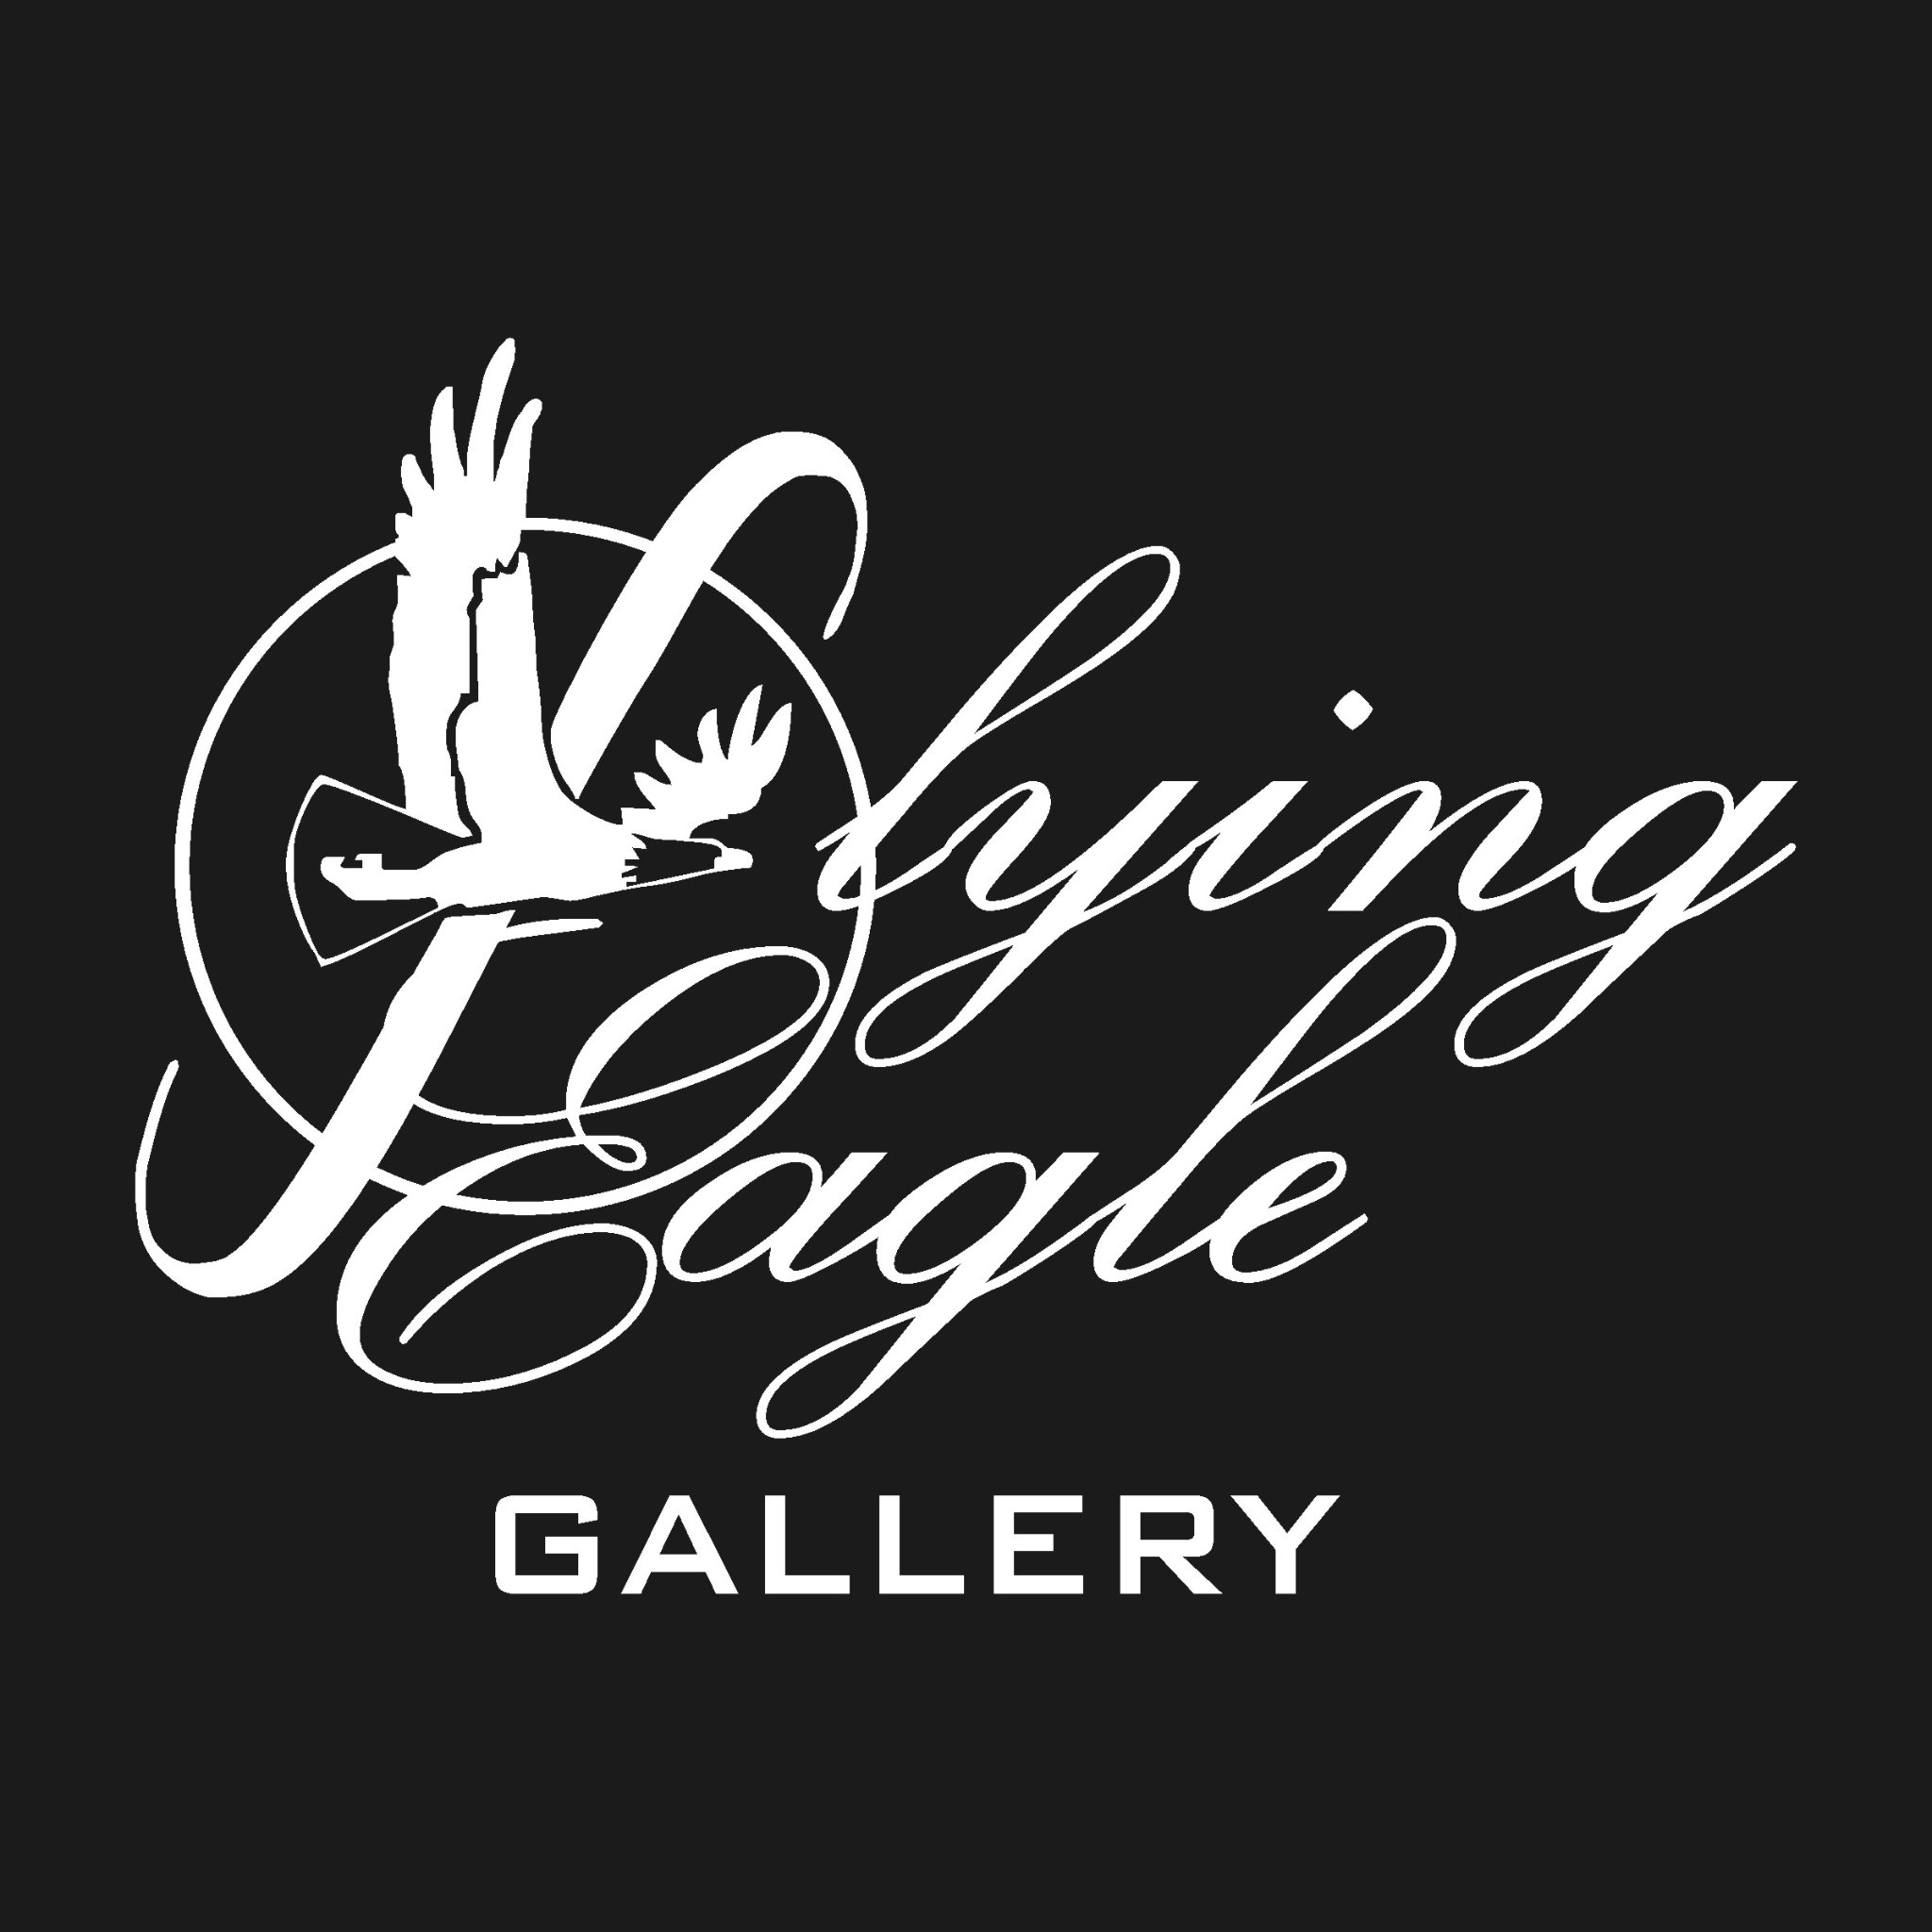 Flying Eagle Gallery on Twitter: